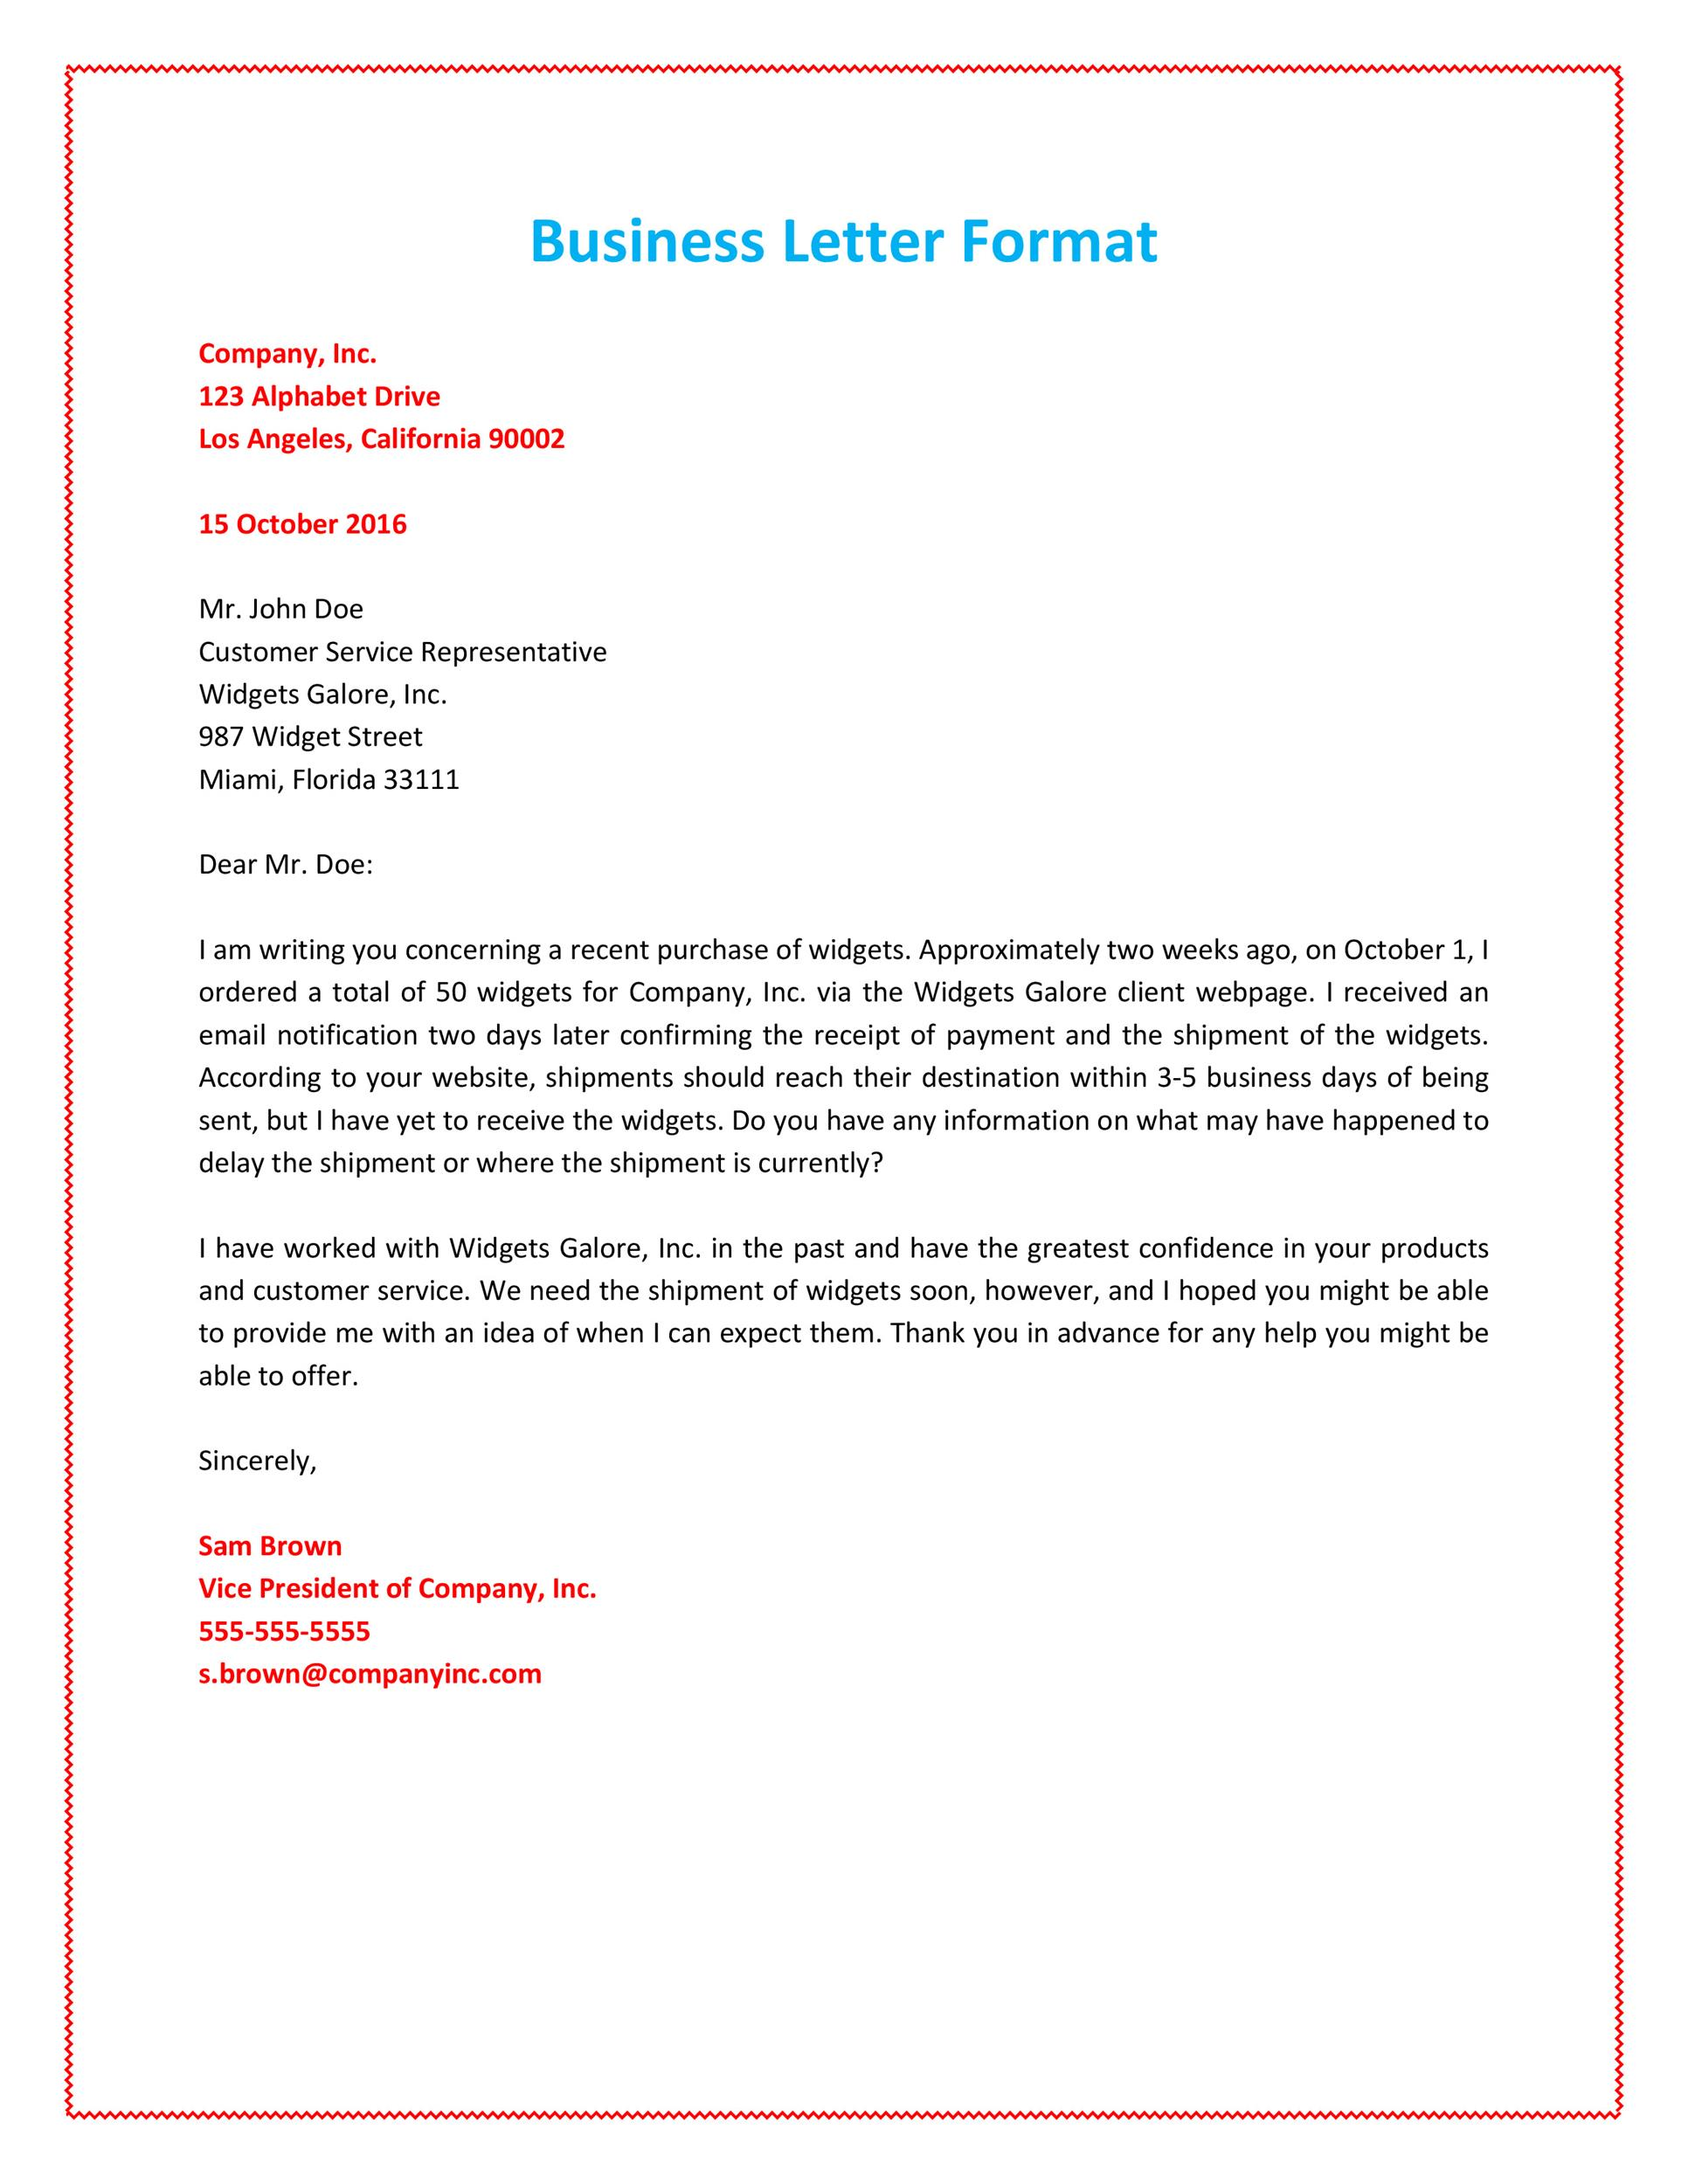 Letter To Business Yolarnetonic